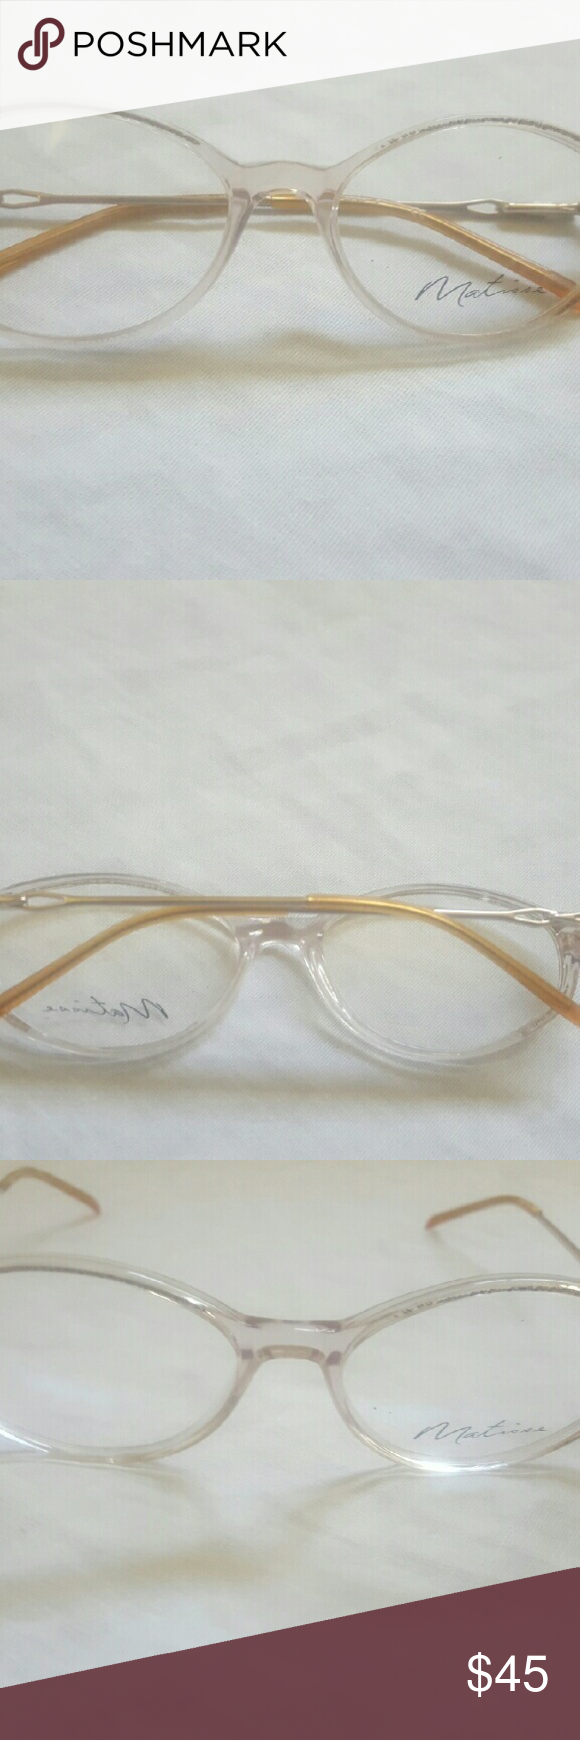 💲FINAL PRICE💲 Matisse Frames - MA 305 Authentic Matisse Frames. Demo lens. MA 305. 53-16 130. Color: Beige. NWOT Matisse Accessories Glasses